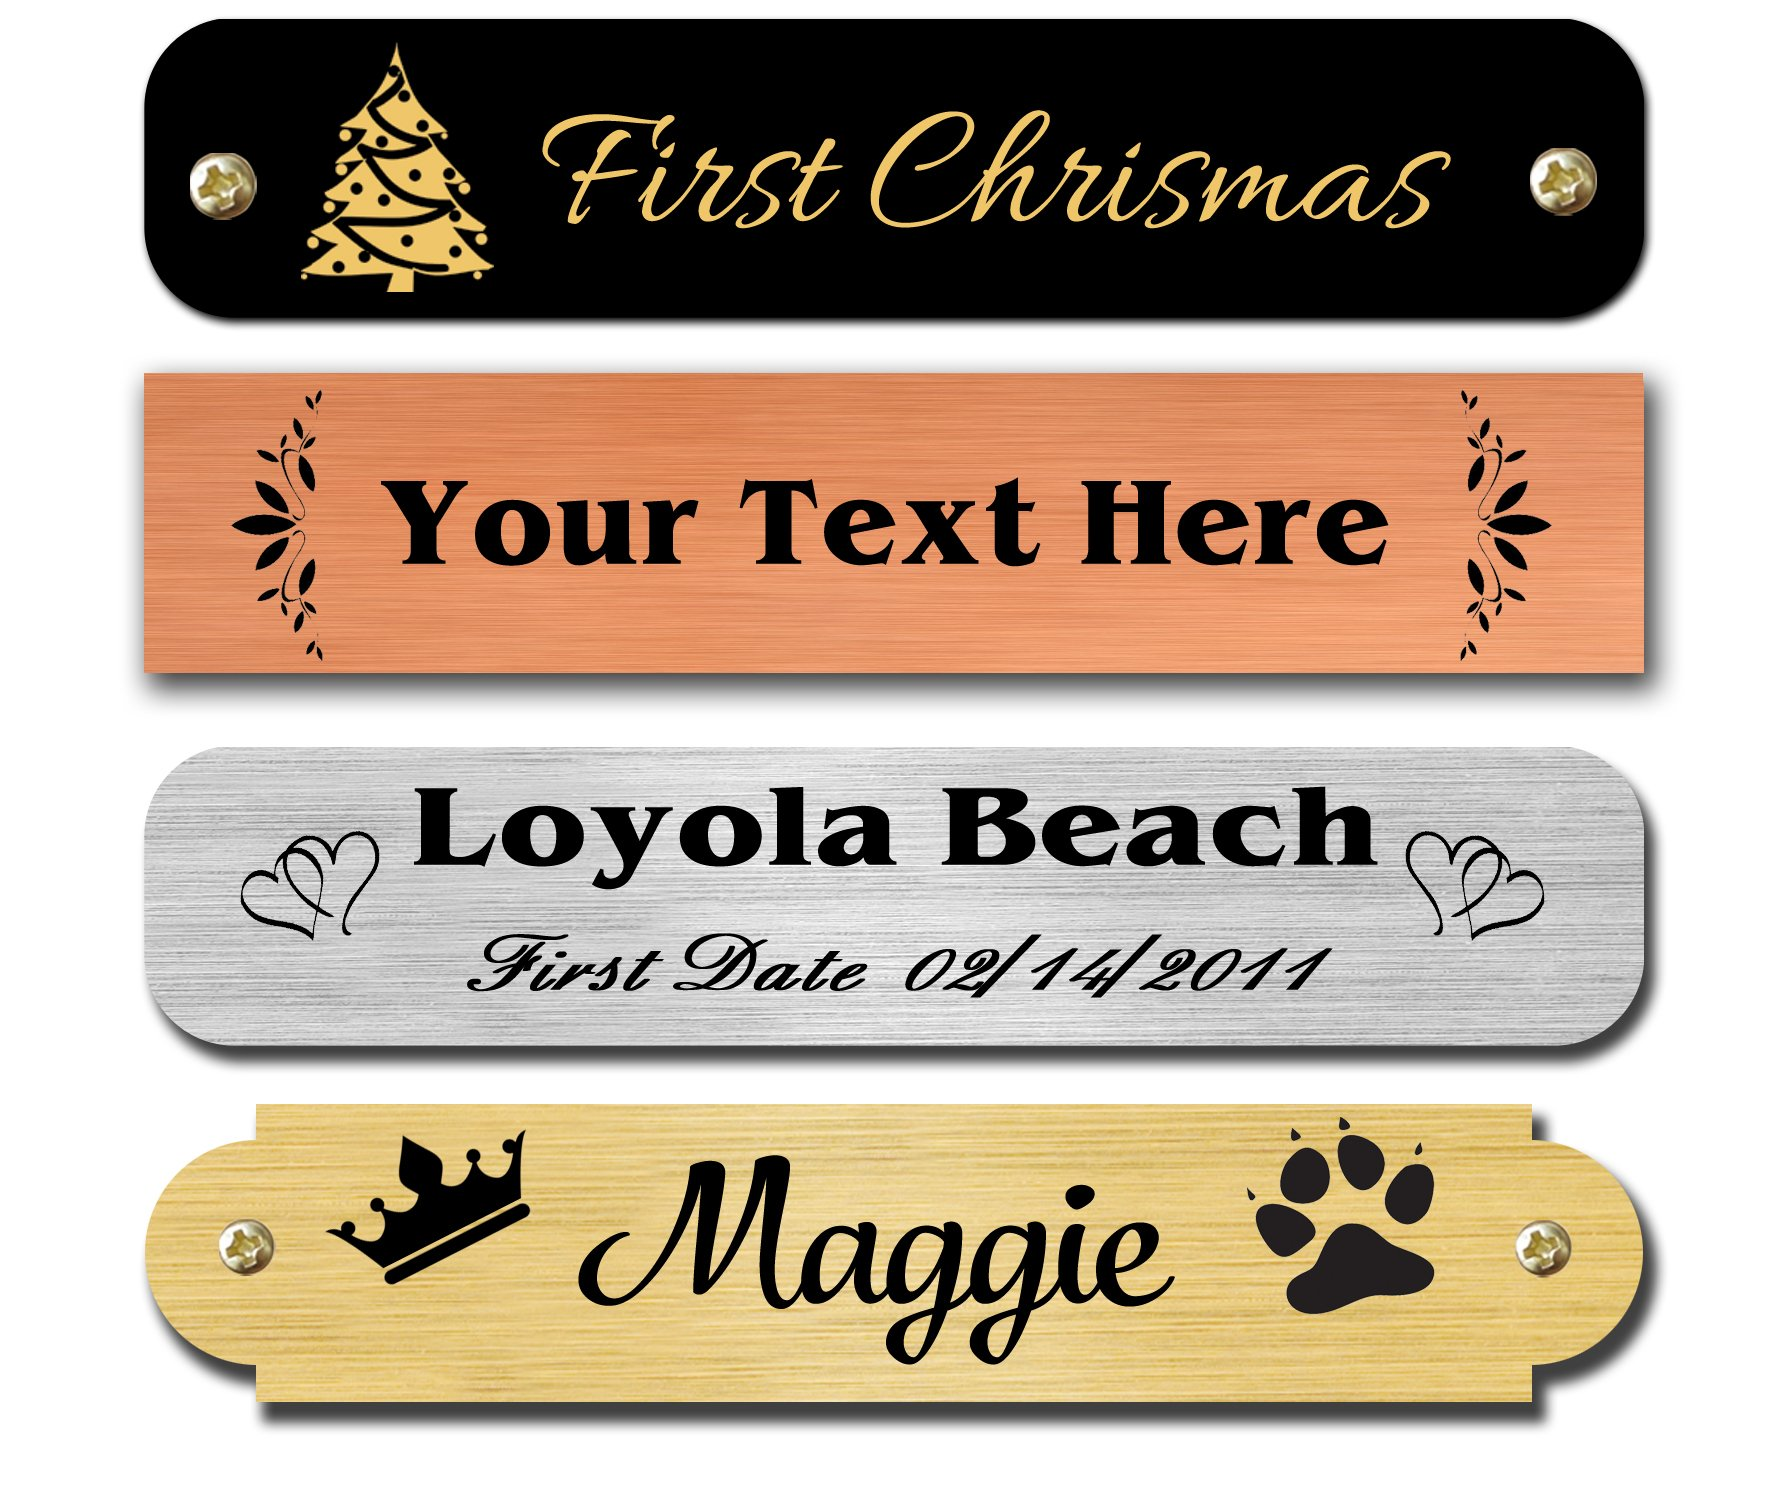 0.5'' H x 2.5'' W, Brass Nameplates, Personalized, Custom Engraved Tag, Name Plaque, Square Or Round Corners Made in USA (Gloss Black)